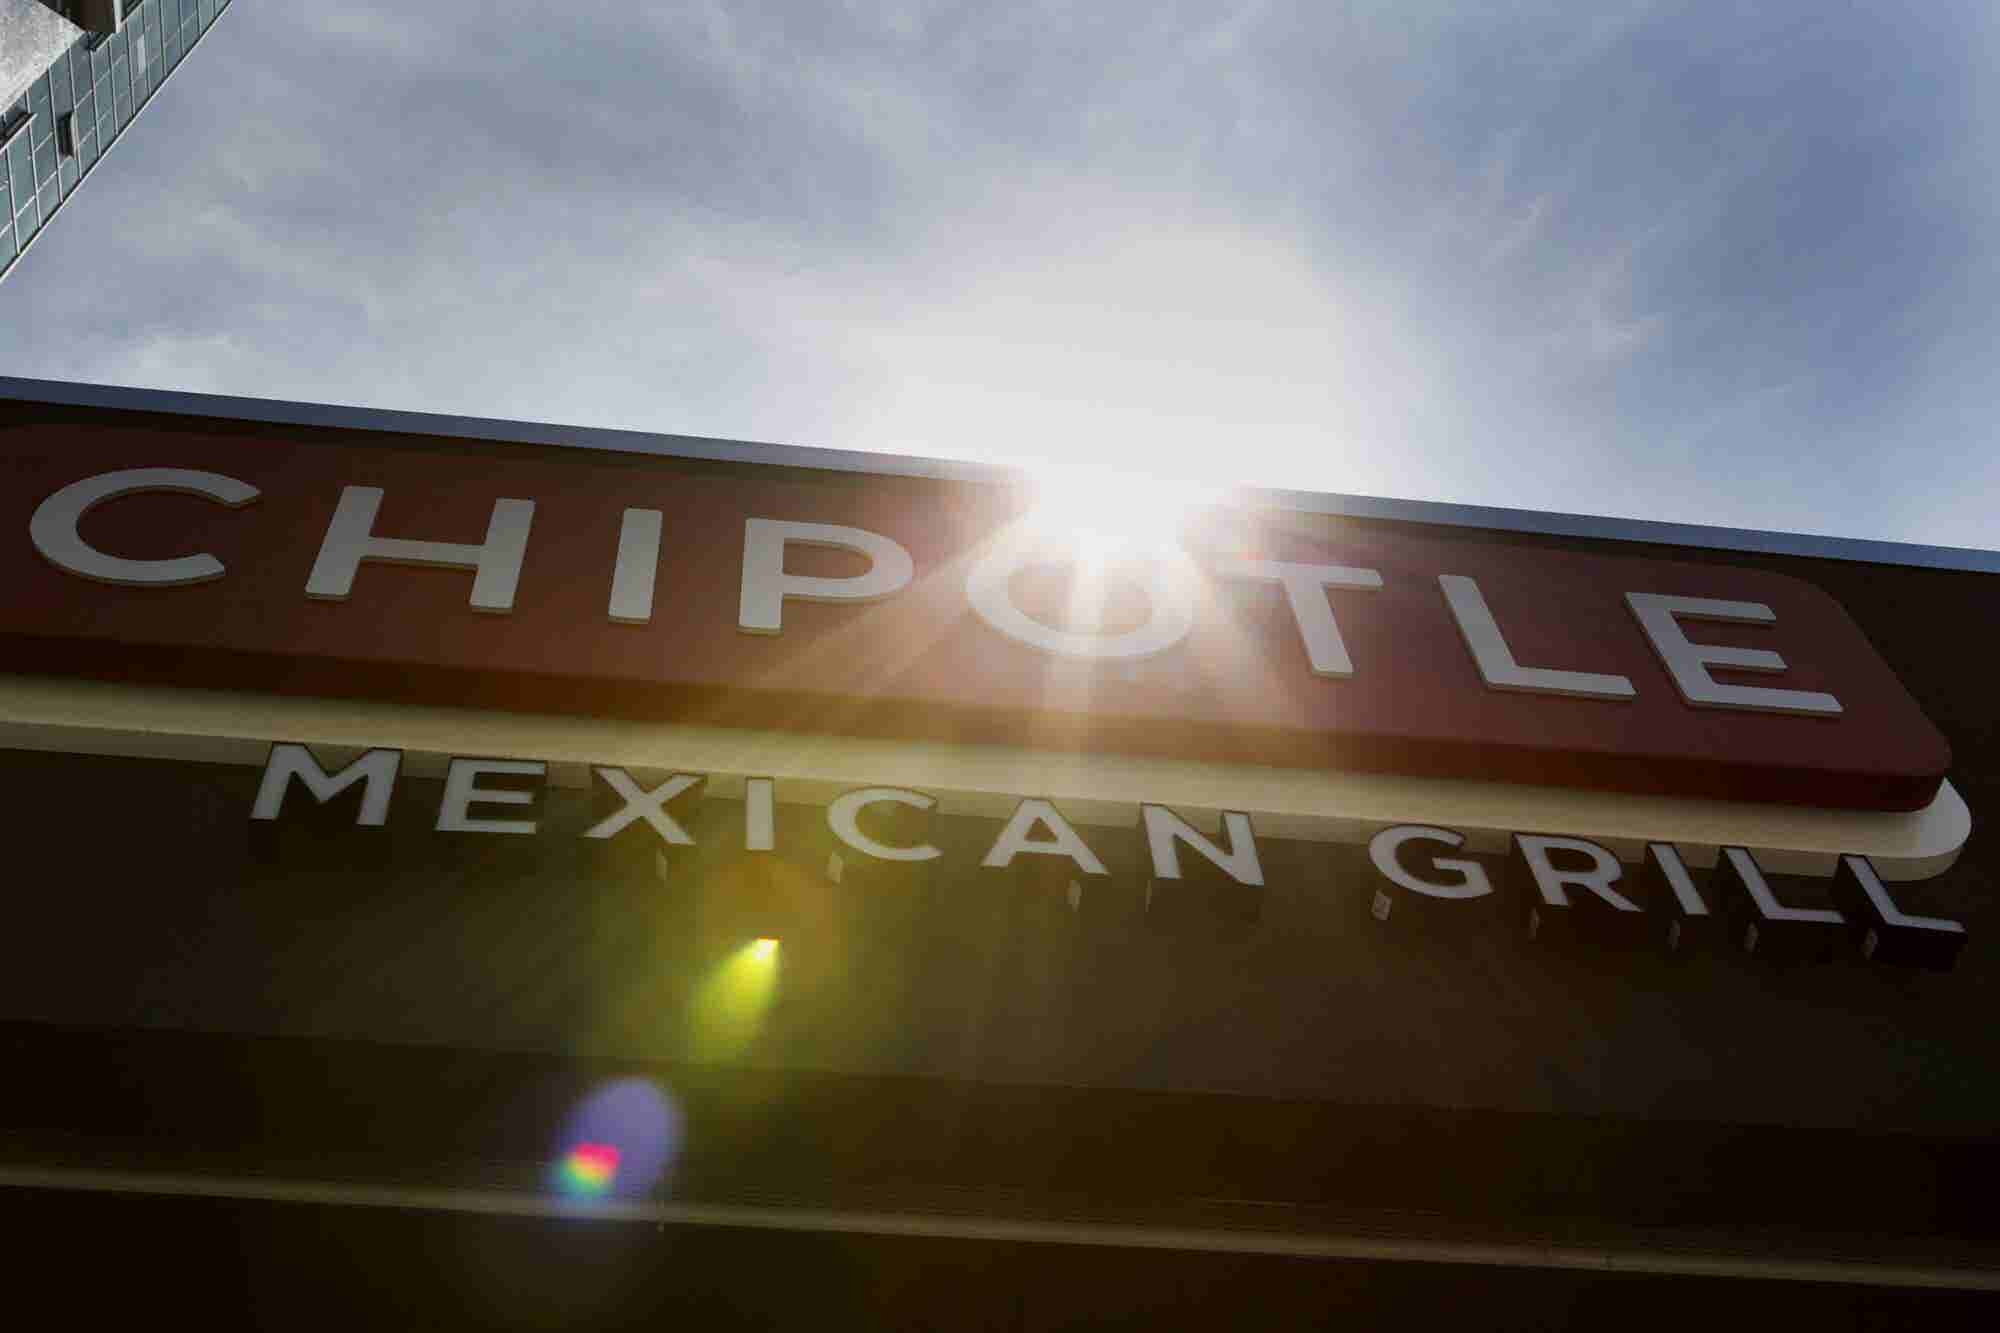 Chipotle Shoots for the Stars, Hires Oscar Winner to Produce Ad